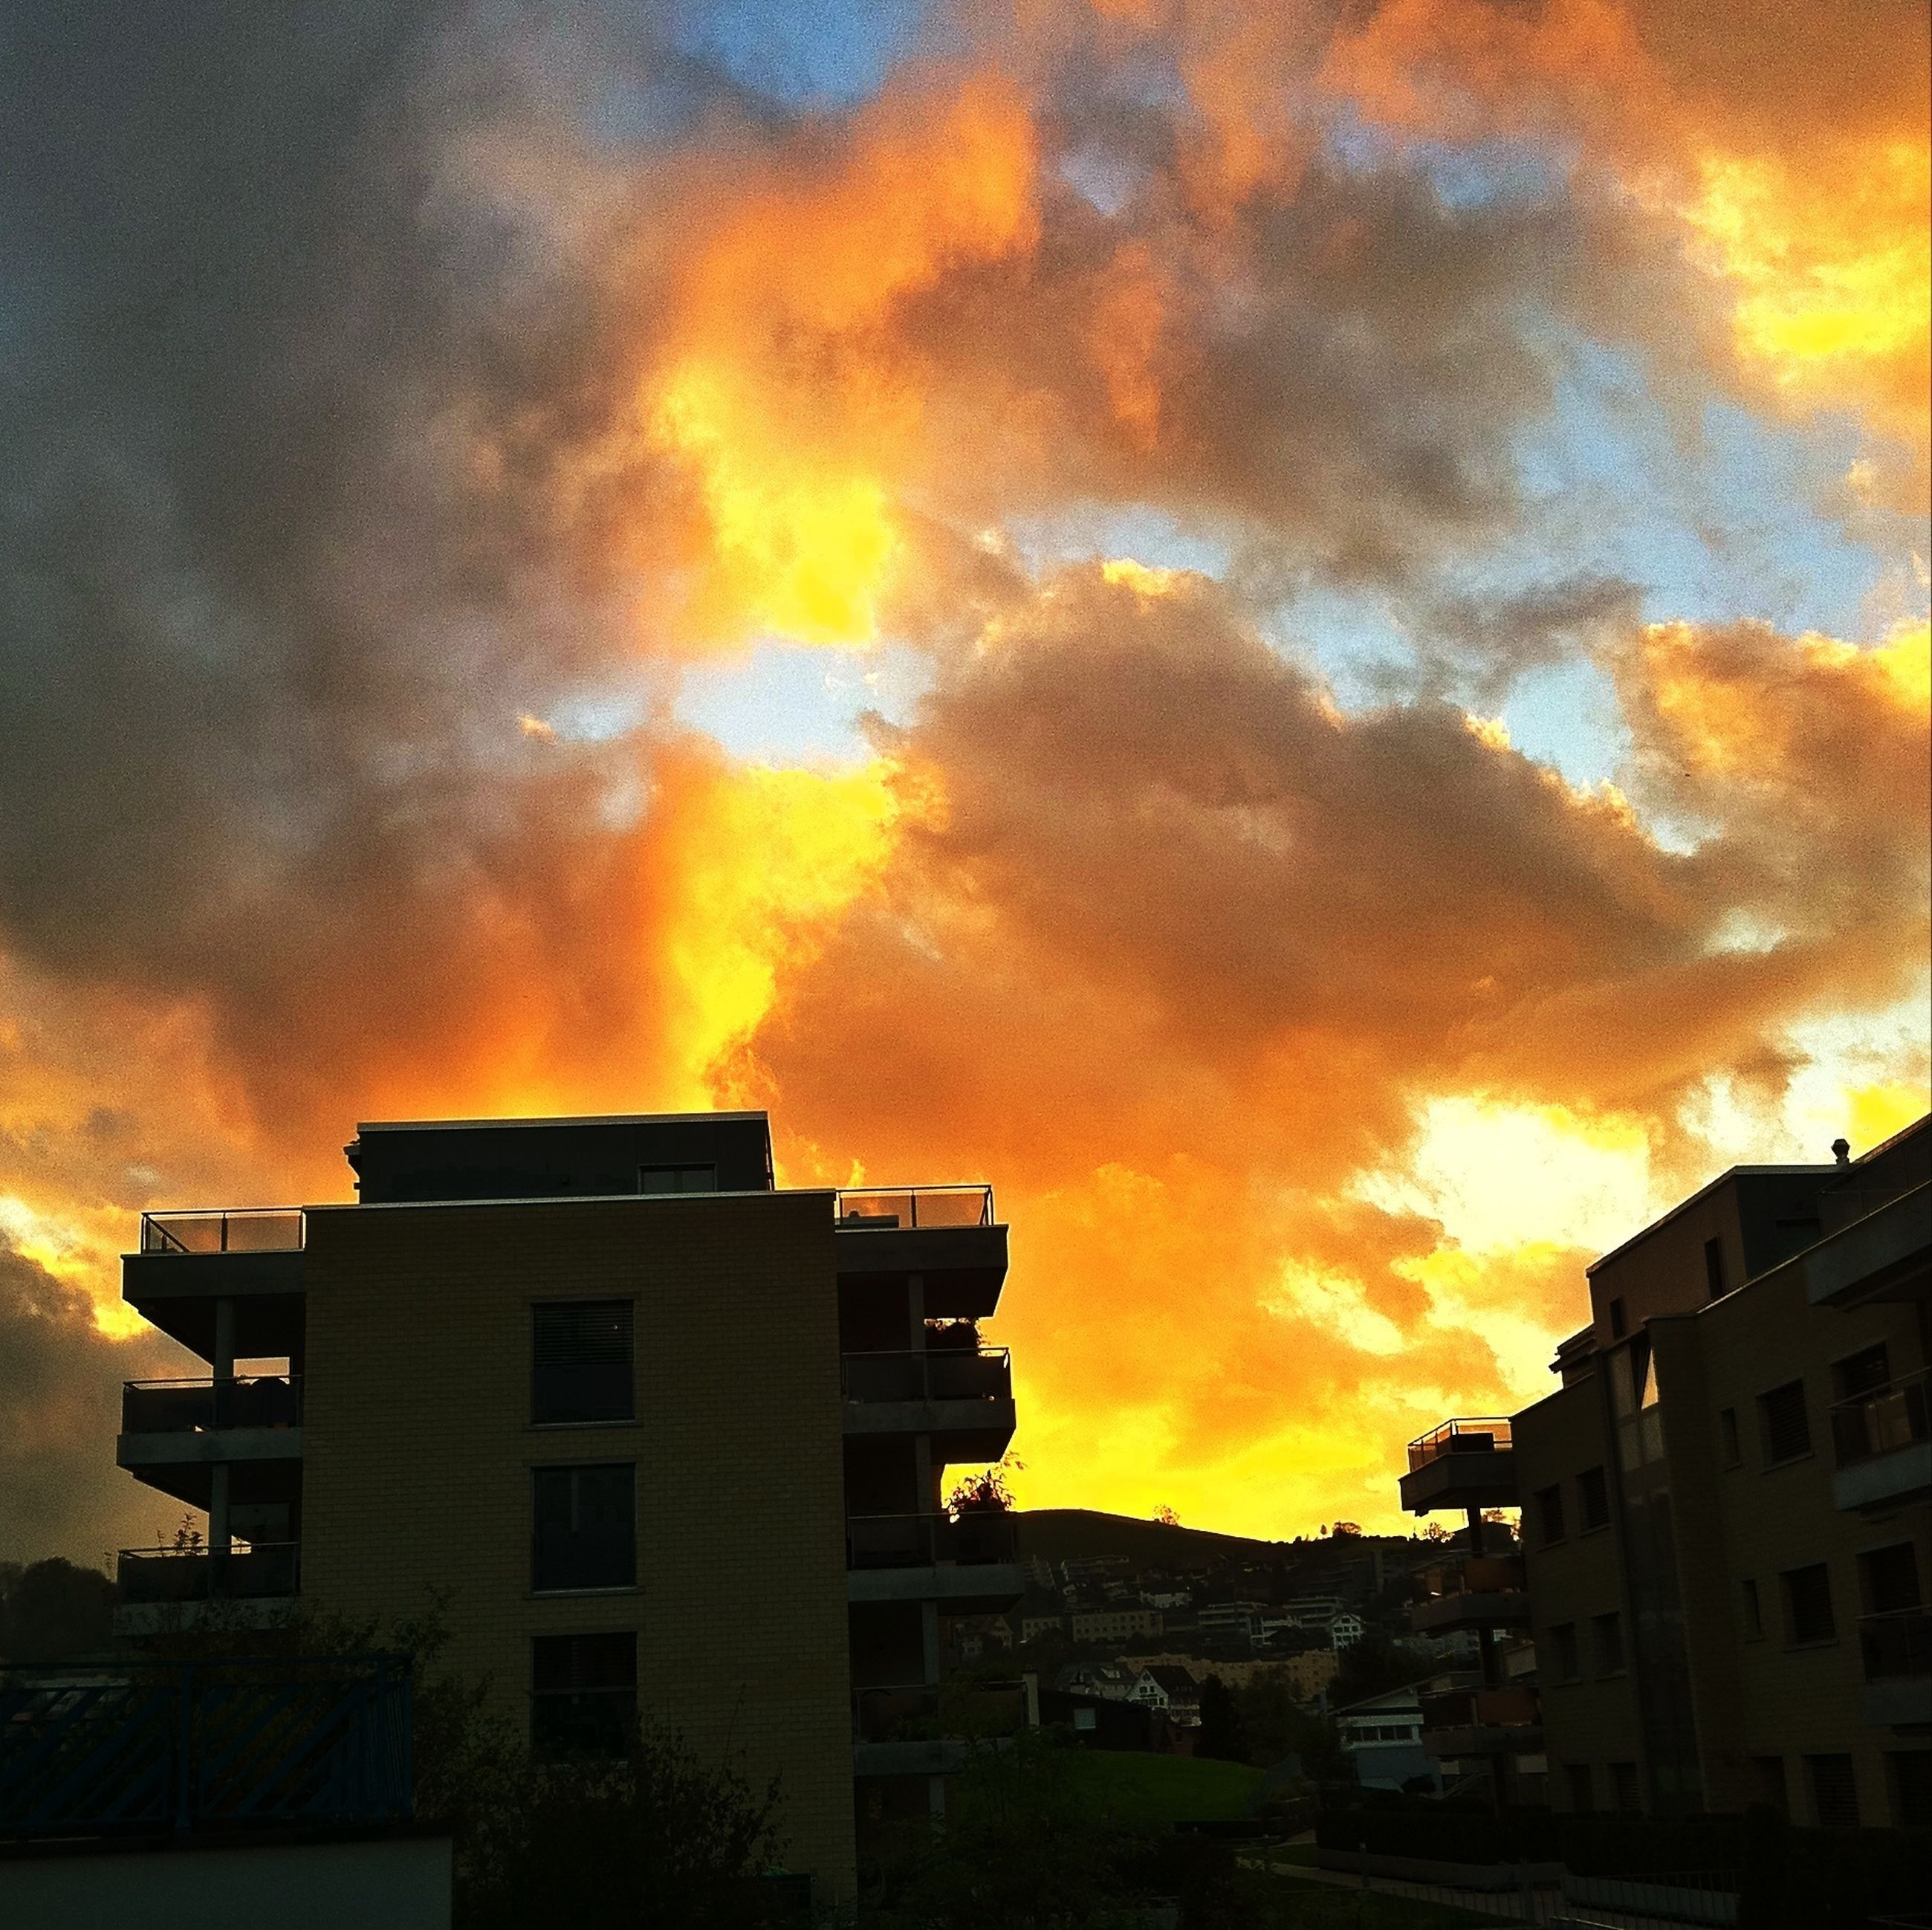 sunset, building exterior, architecture, built structure, sky, cloud - sky, orange color, cloudy, low angle view, city, residential building, dramatic sky, residential structure, building, house, weather, cloud, overcast, silhouette, outdoors